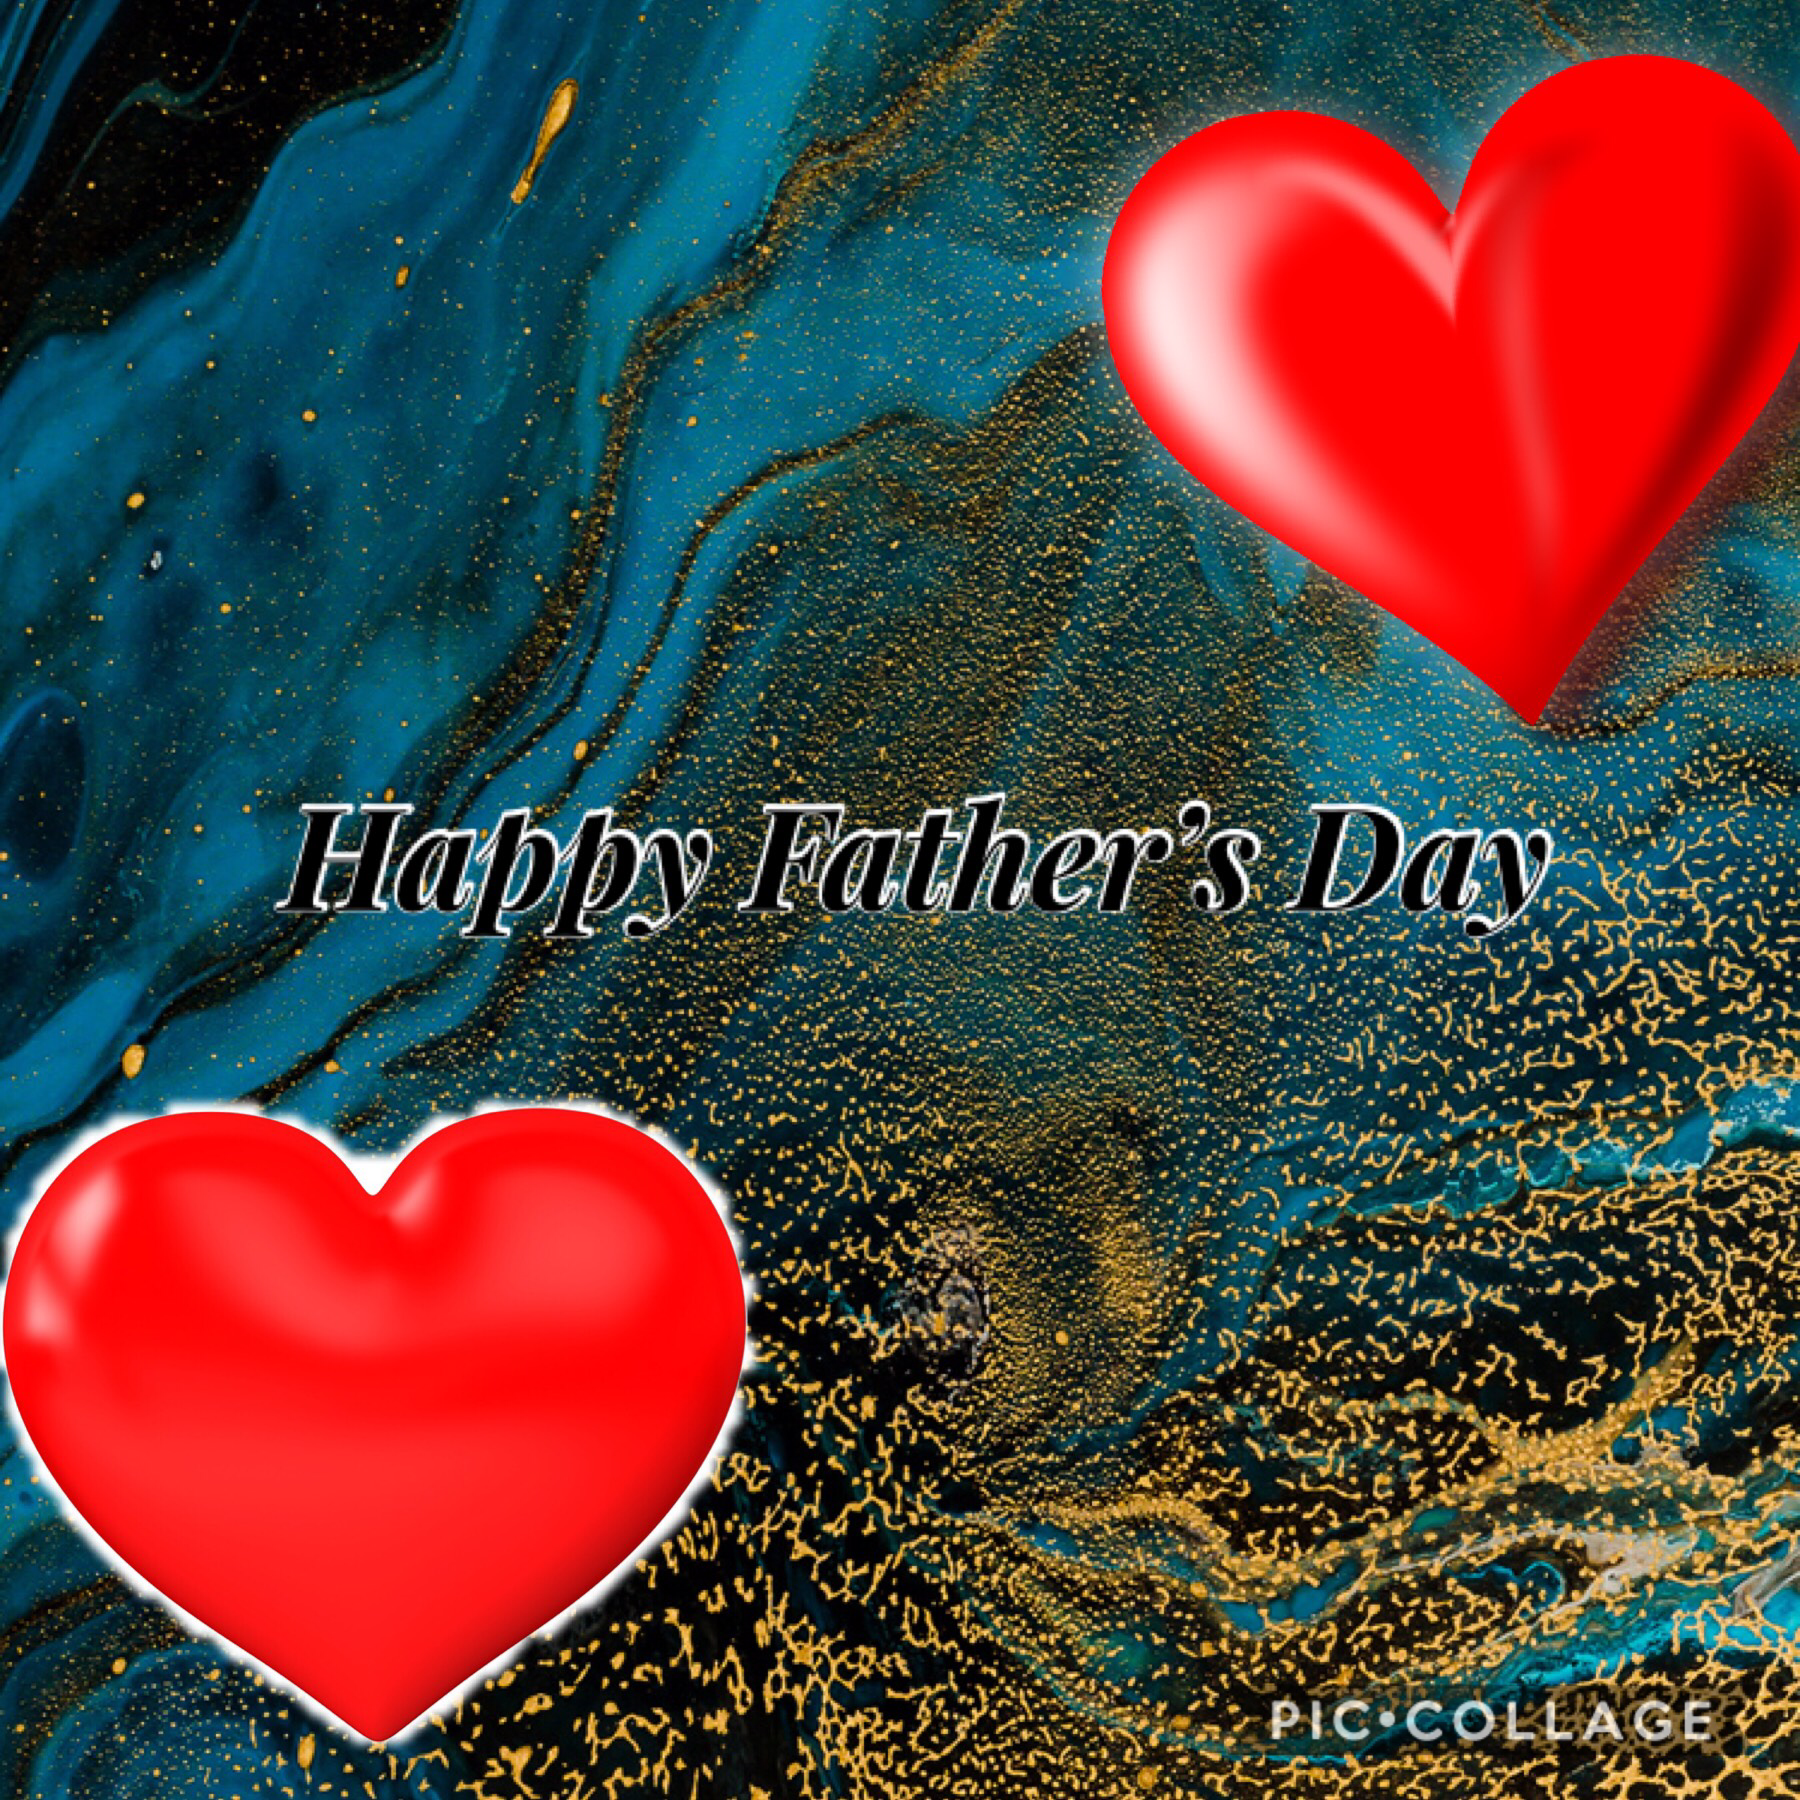 Happy Father's Day to all dads out there